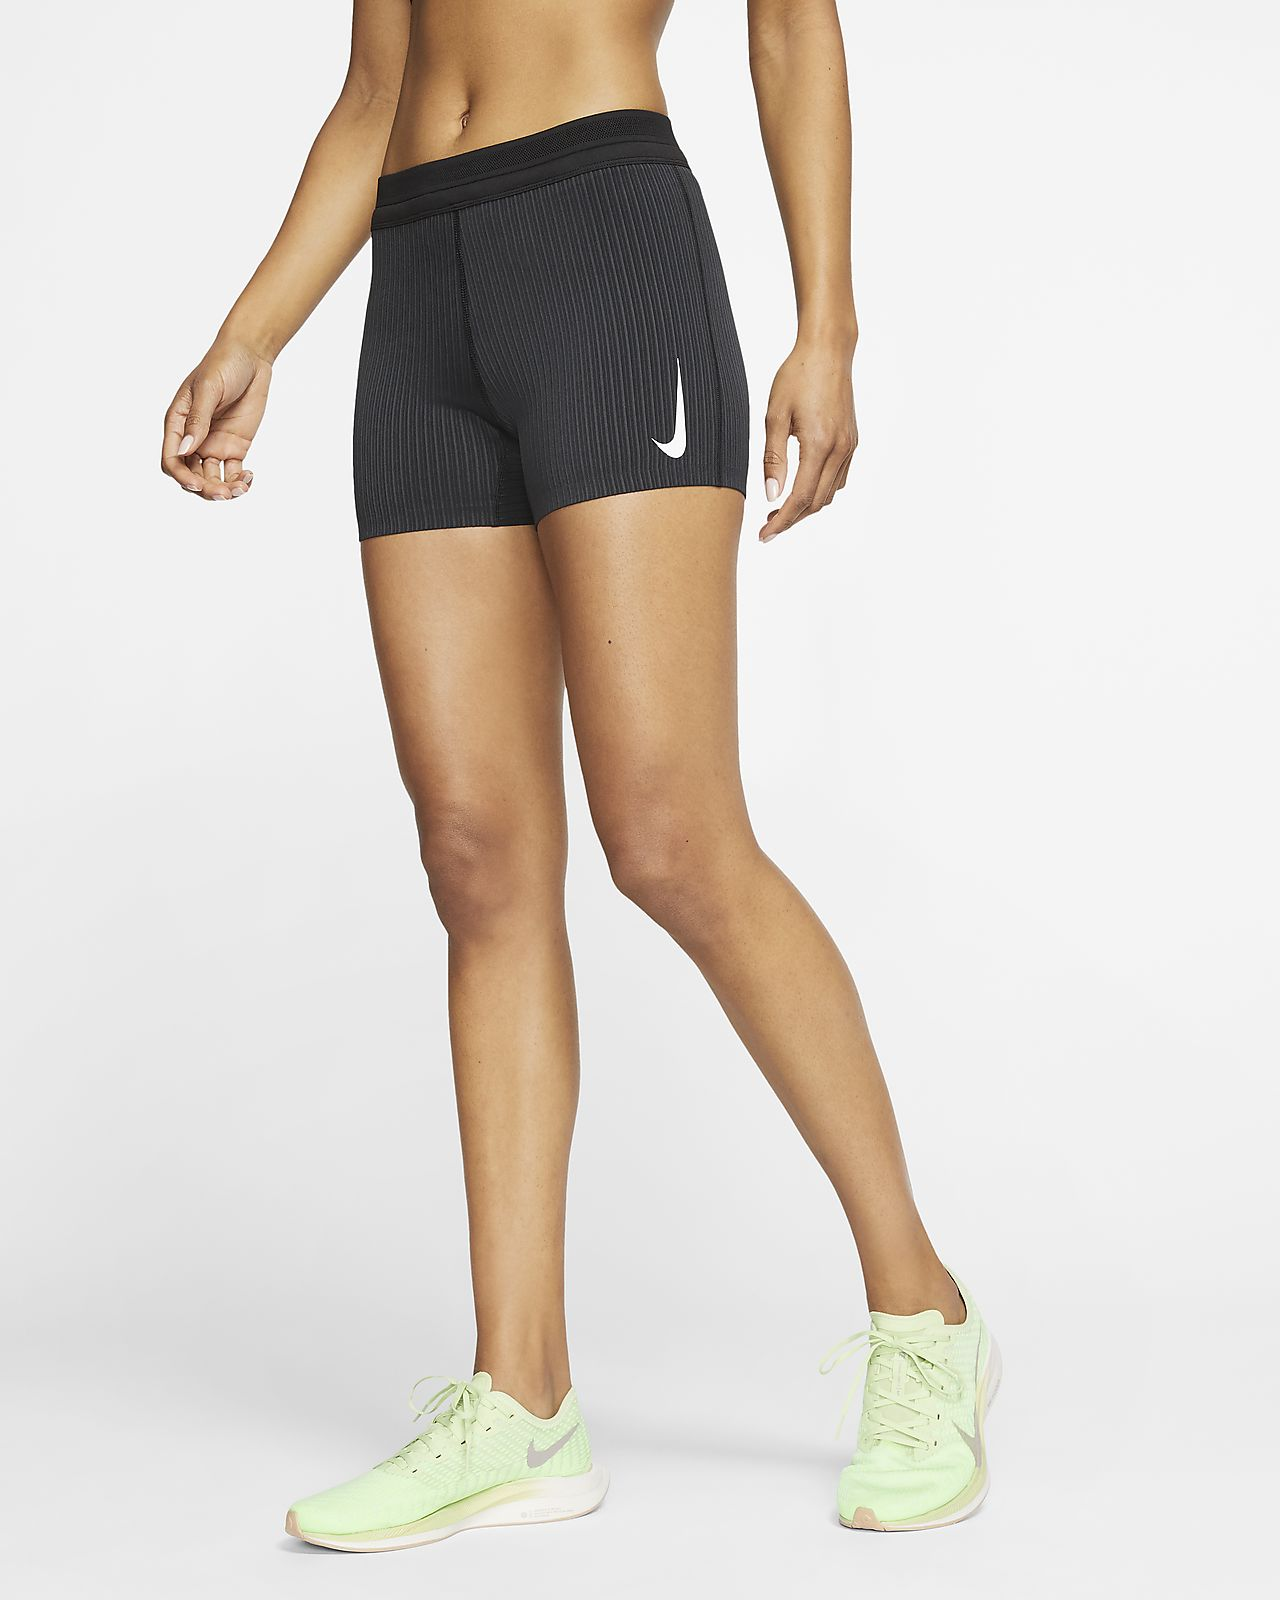 Nike AeroSwift Lauf-Tights für Damen